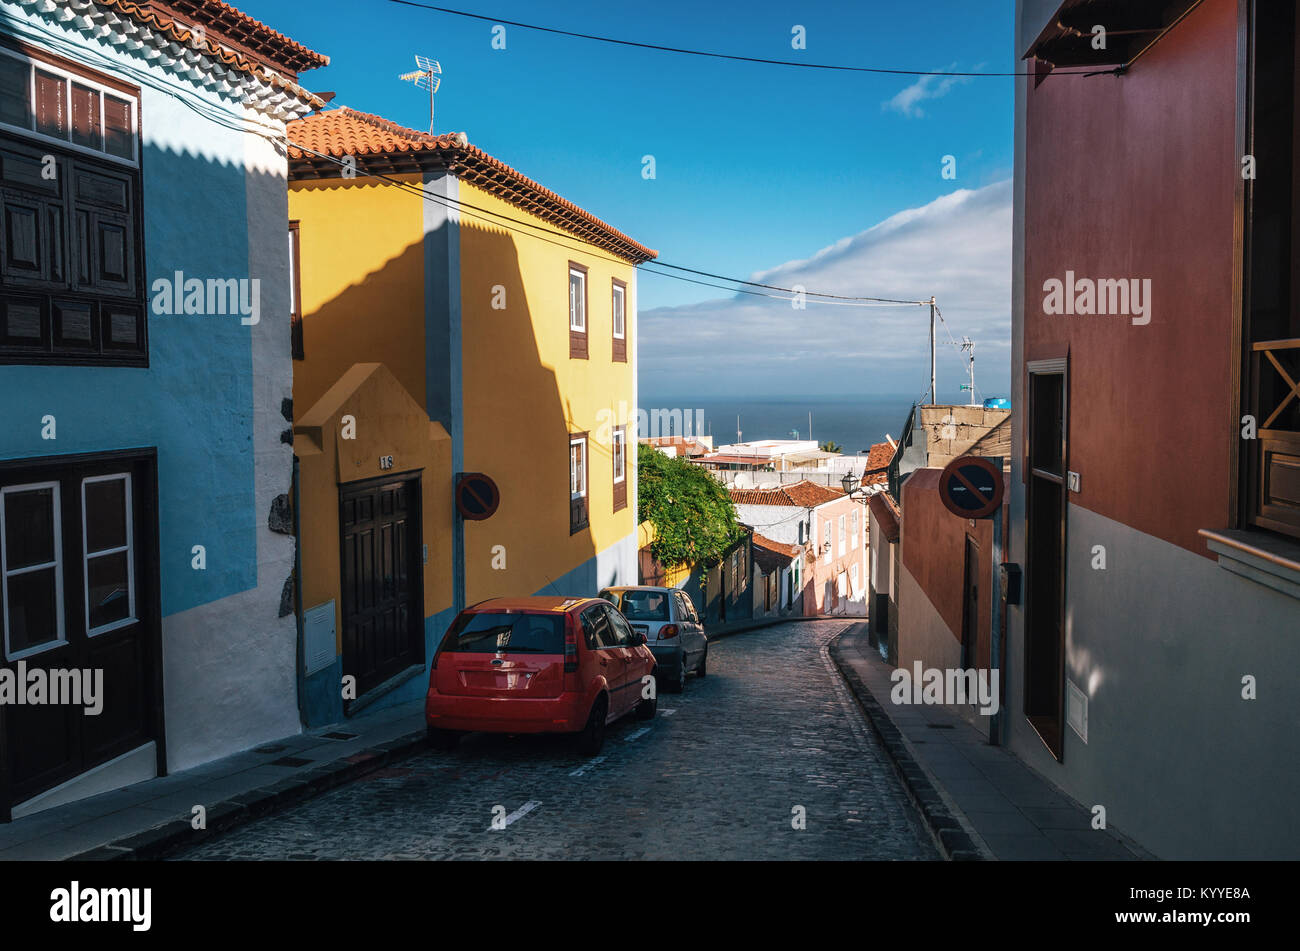 Narrow sloping street in hilly town of La Orotava with colorful retro houses ,Tenerife island, Canarias, Spain. - Stock Image